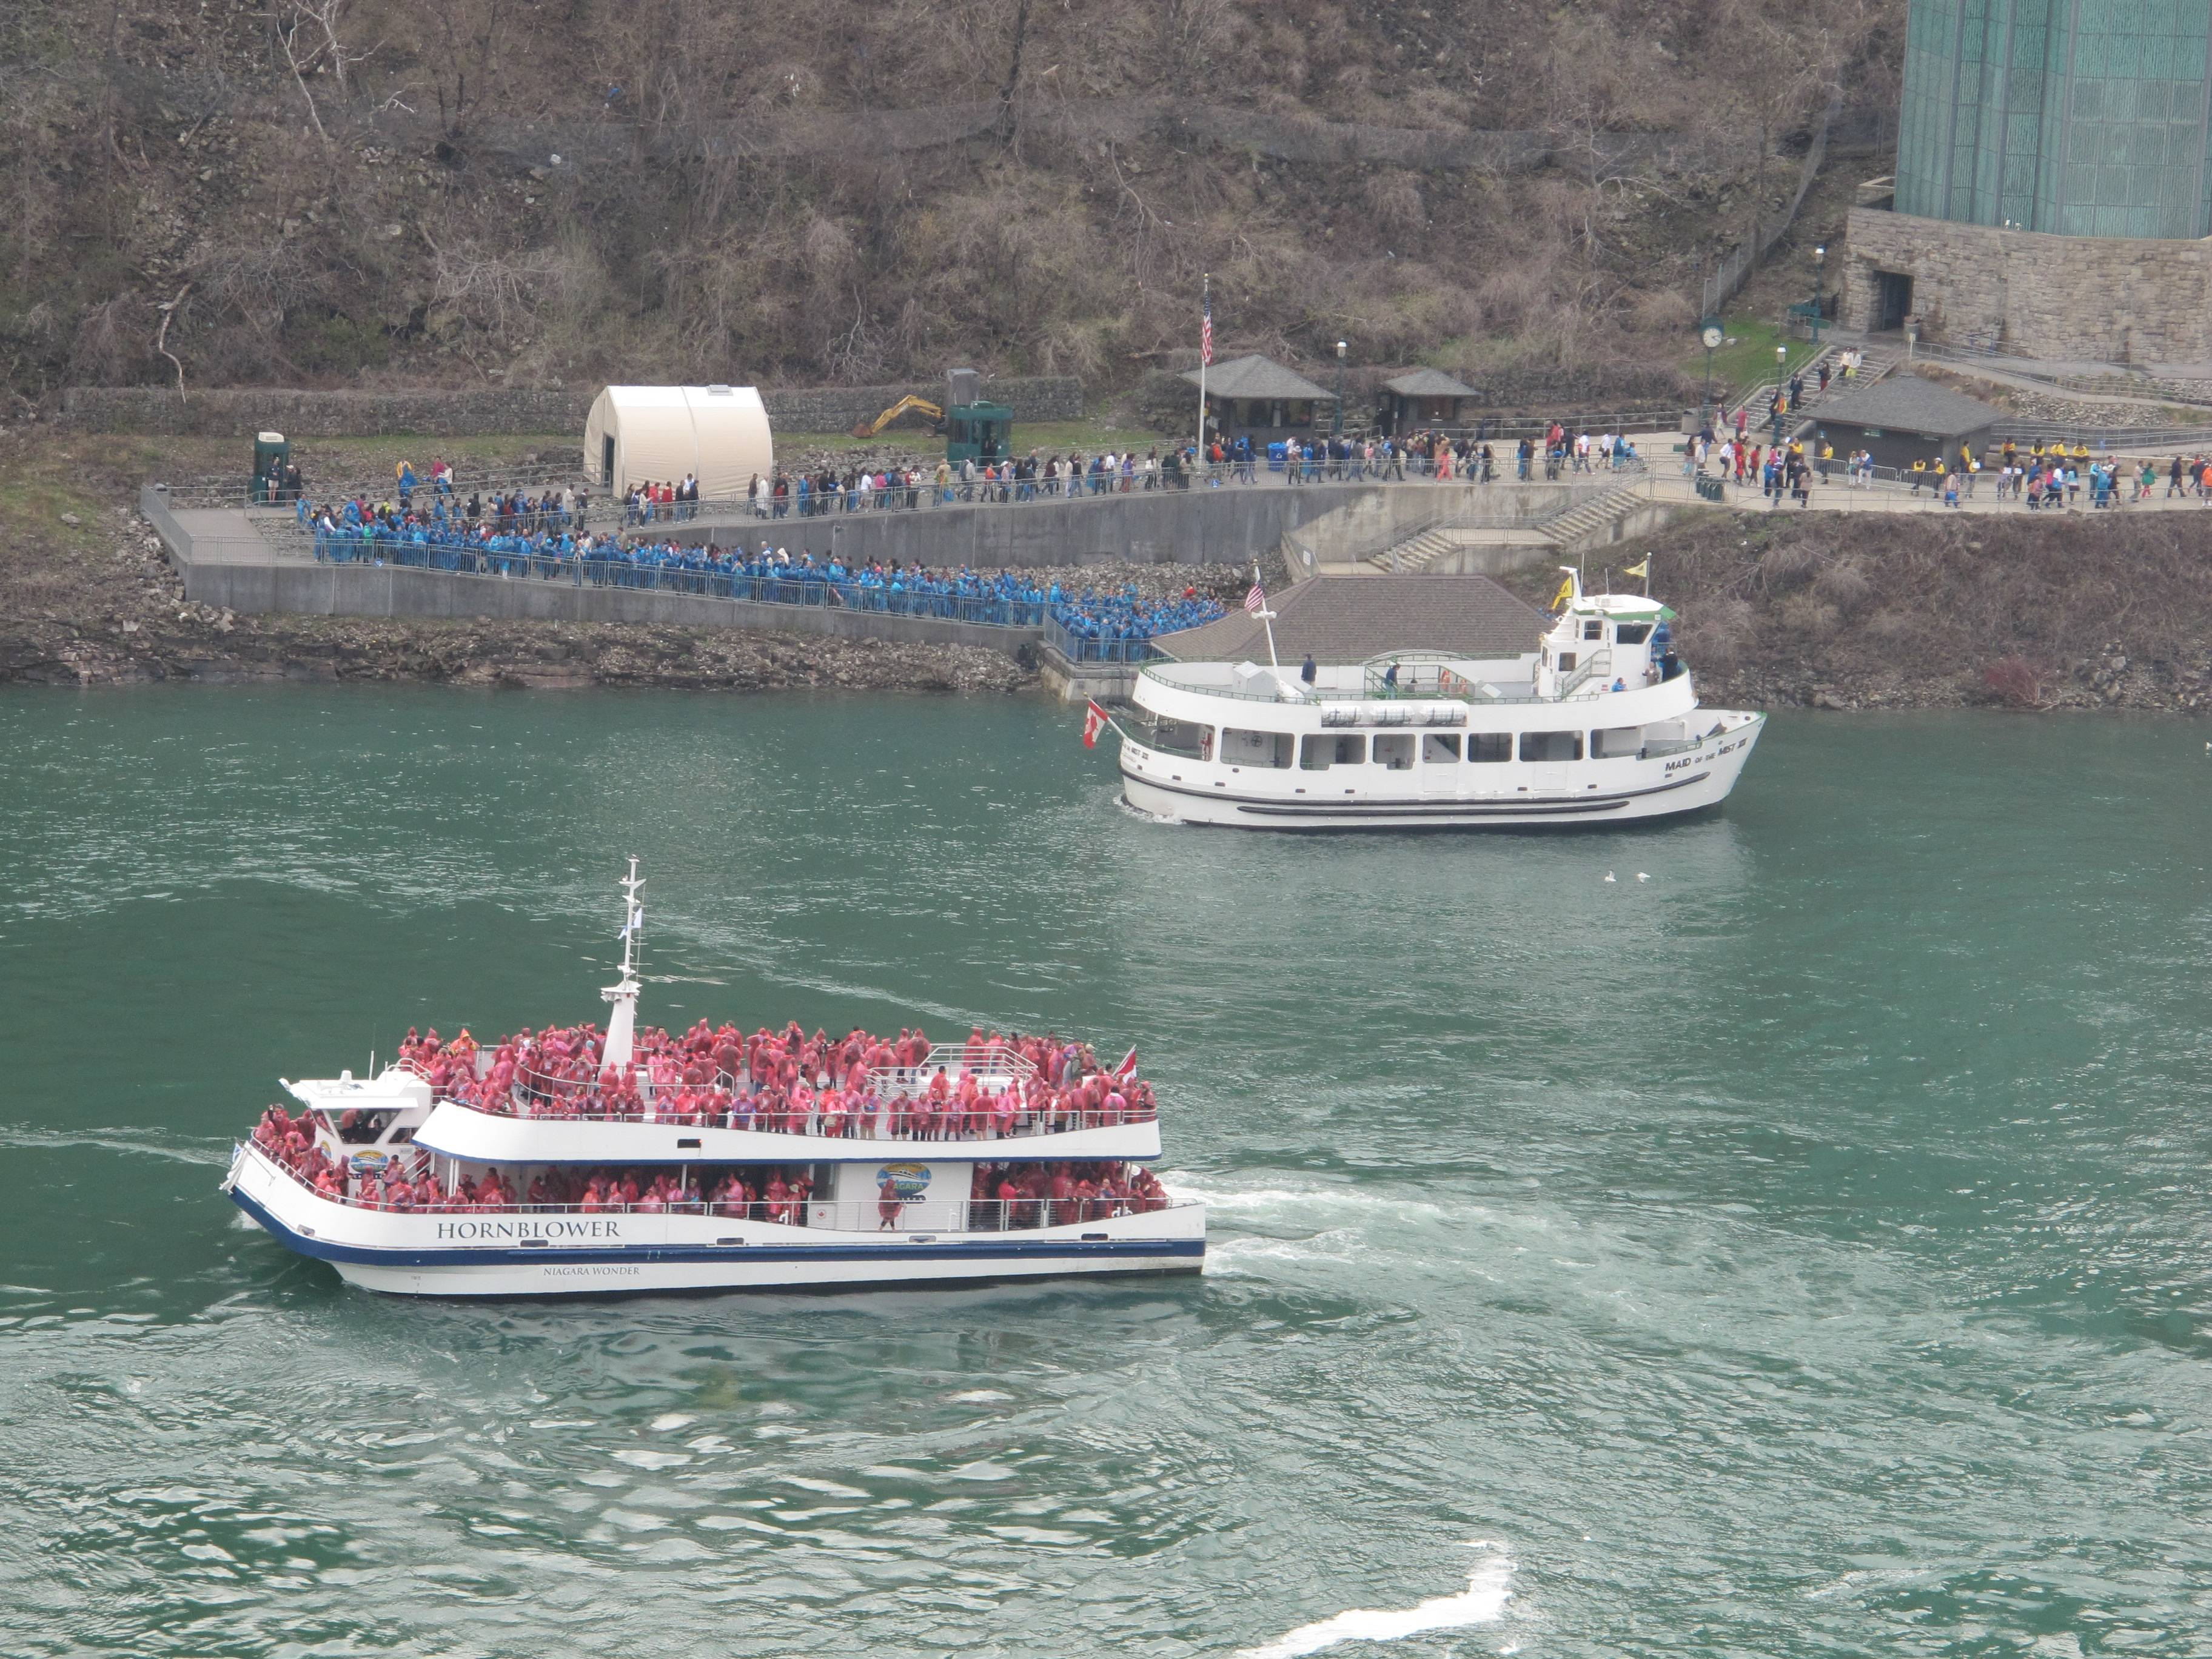 A Hornblower Niagara Cruises Catamaran, foreground, and a Maid of the Mist boat, background, in the Niagara Gorge below Niagara Falls.